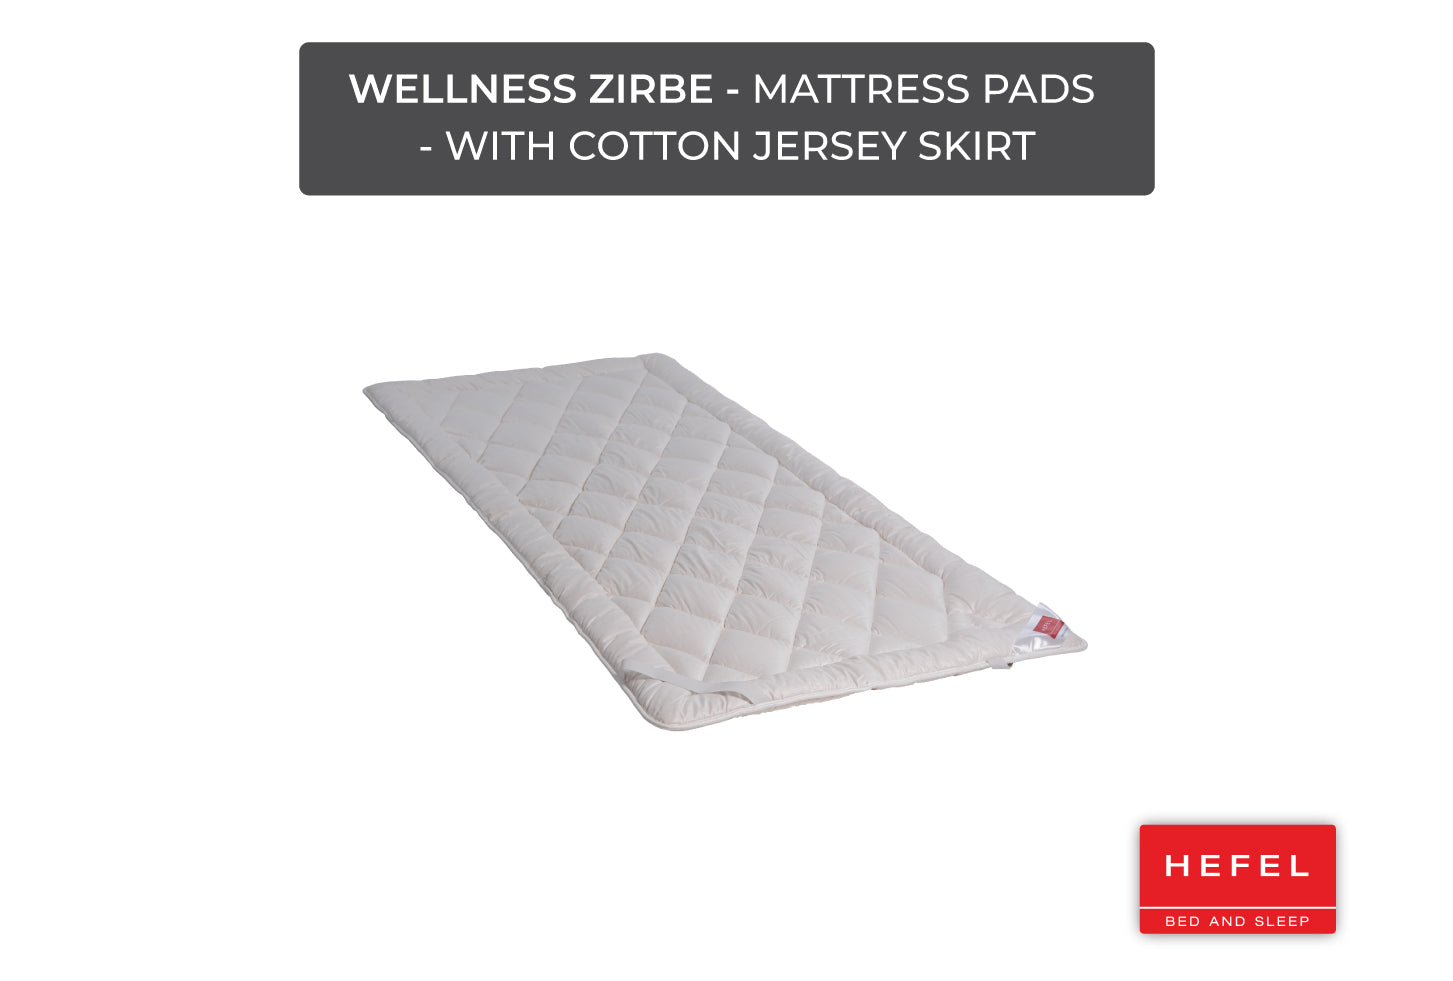 Wellness Zirbe - Mattress Pads - with cotton jersey skirt